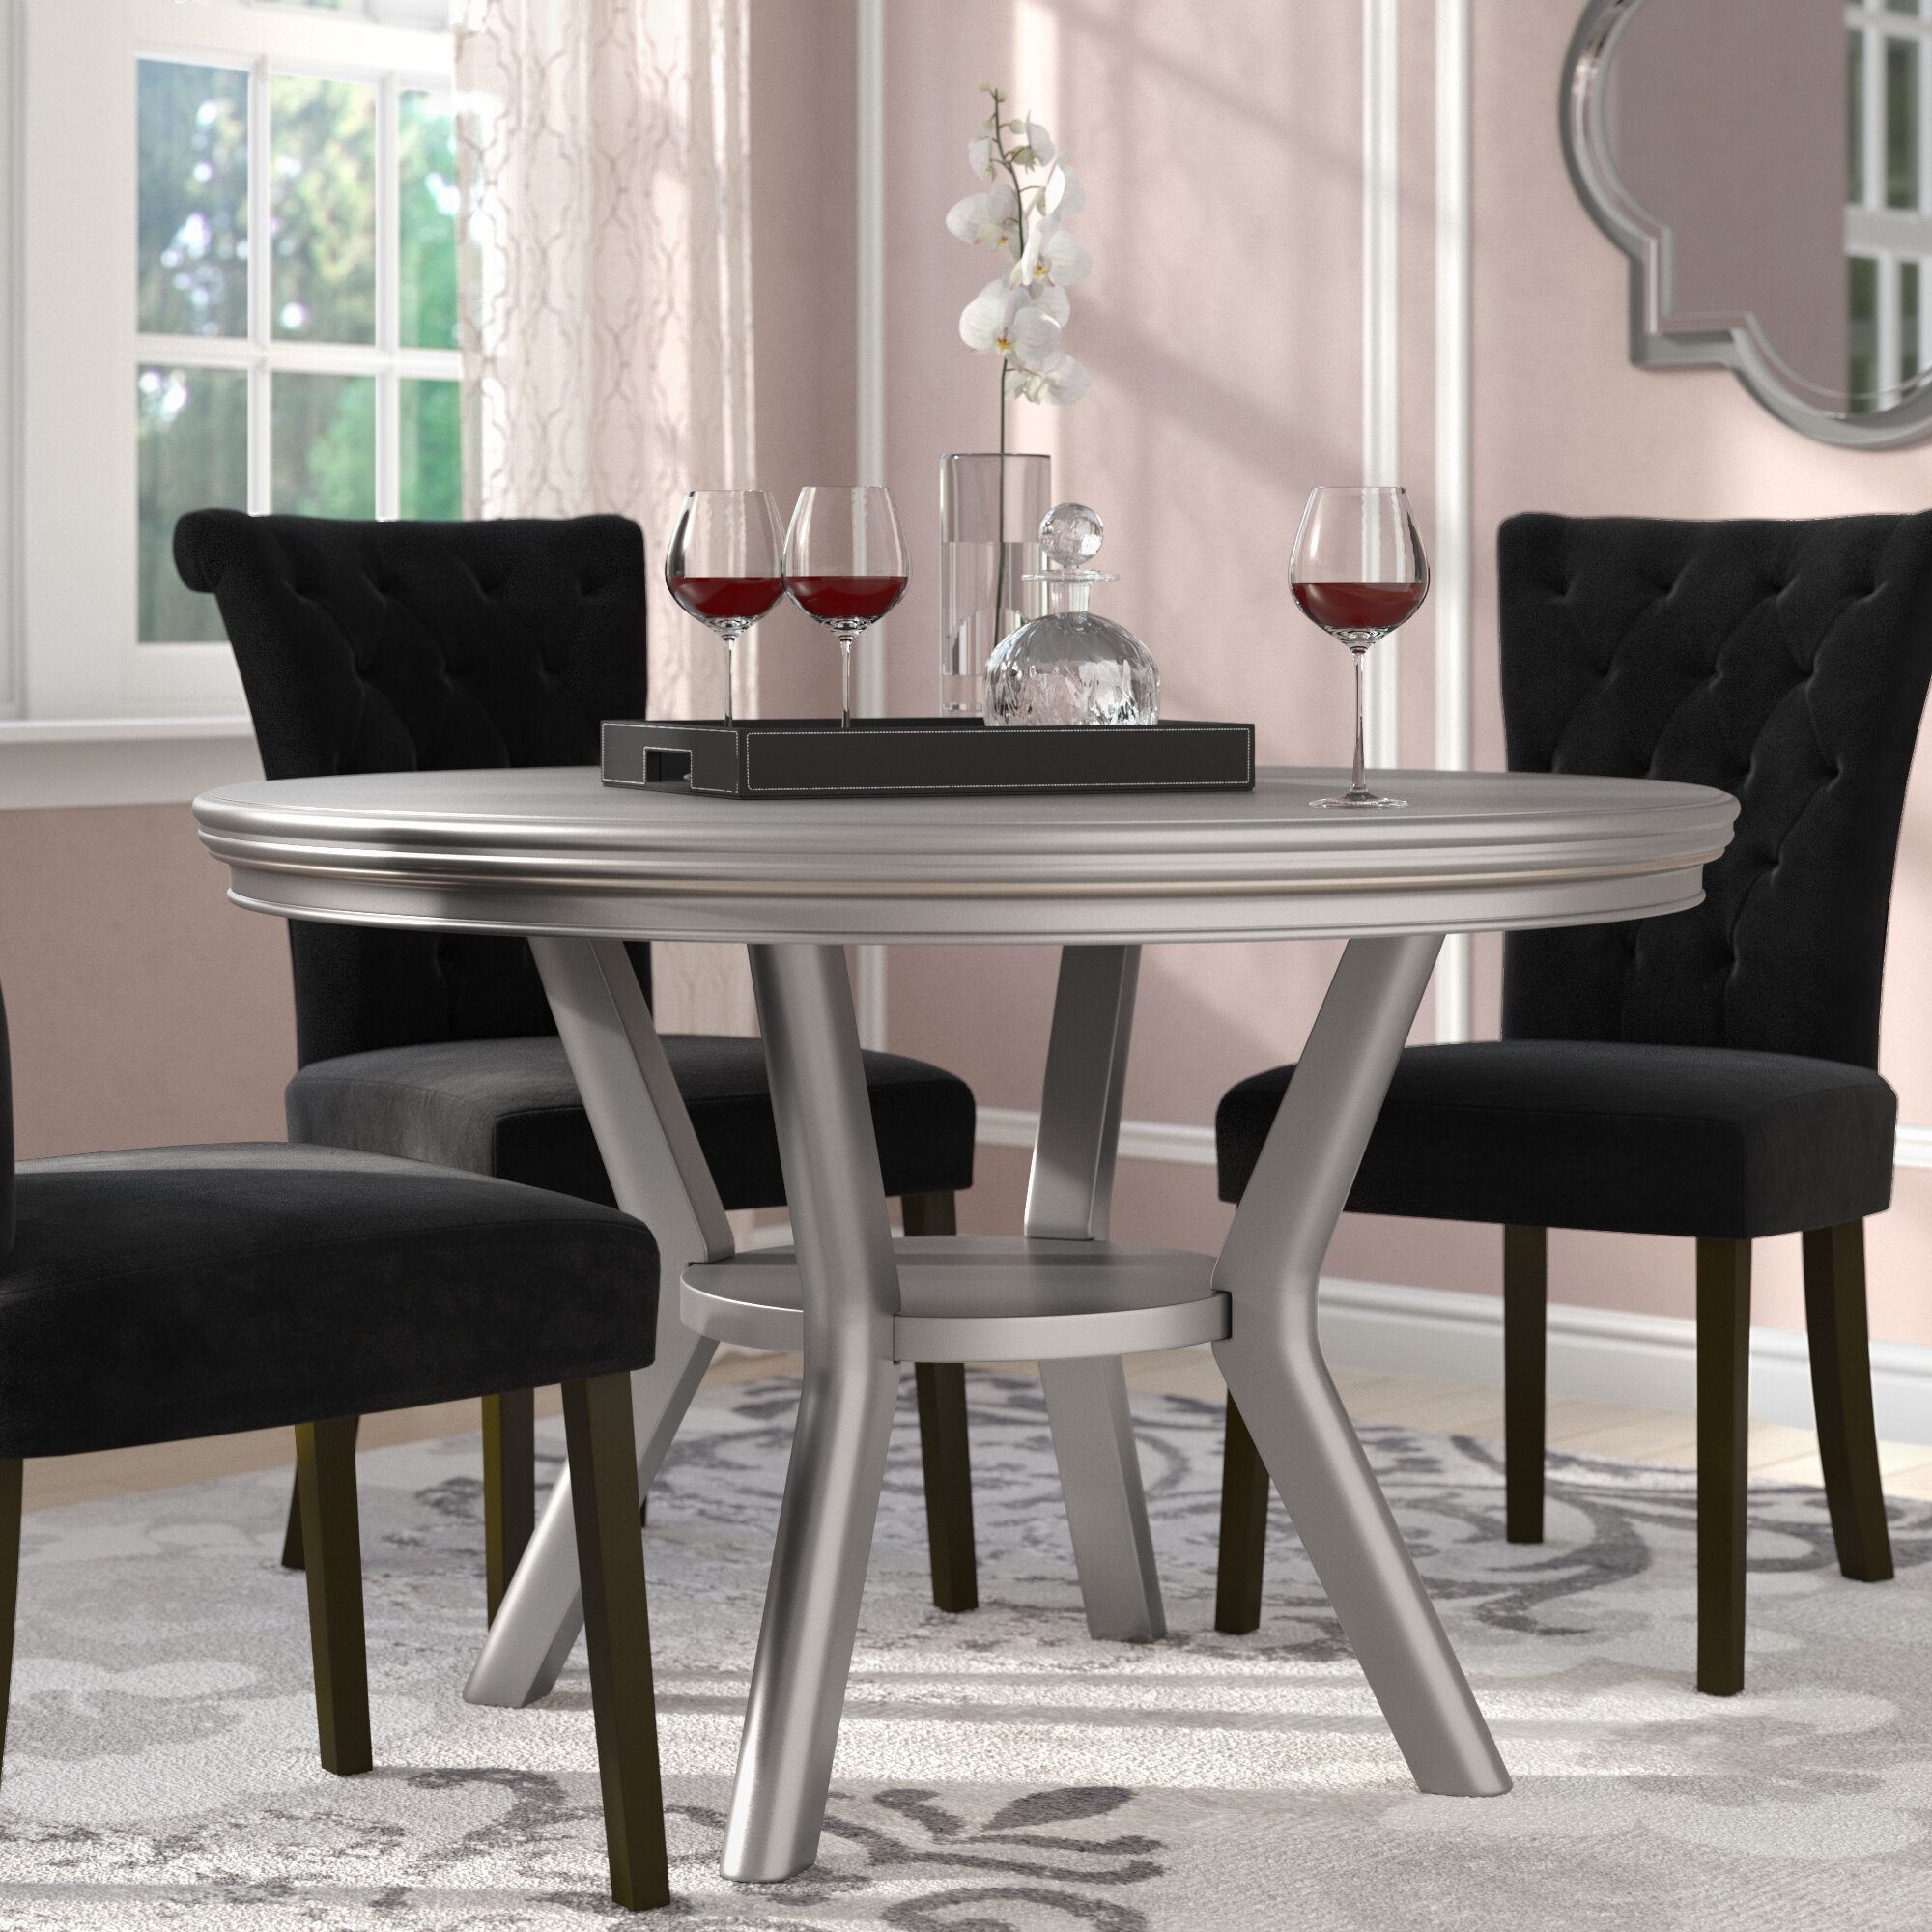 48 Inches Round Kitchen Dining Tables You Ll Love In 2021 Wayfair